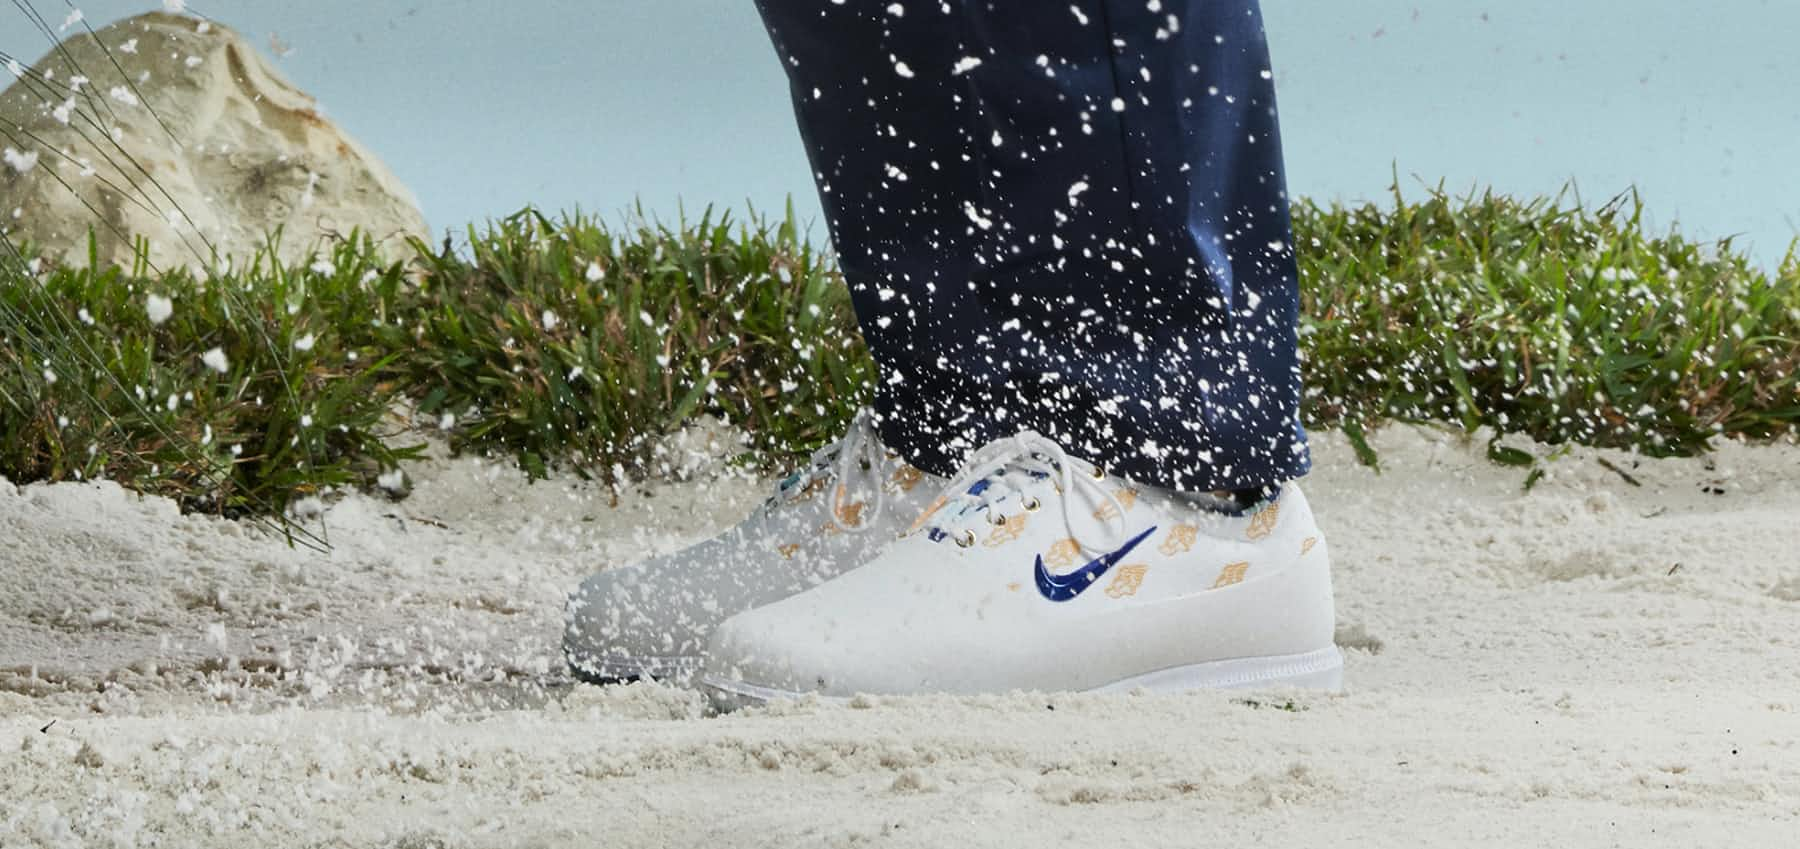 Nike Golf 'Wing It' Shoes